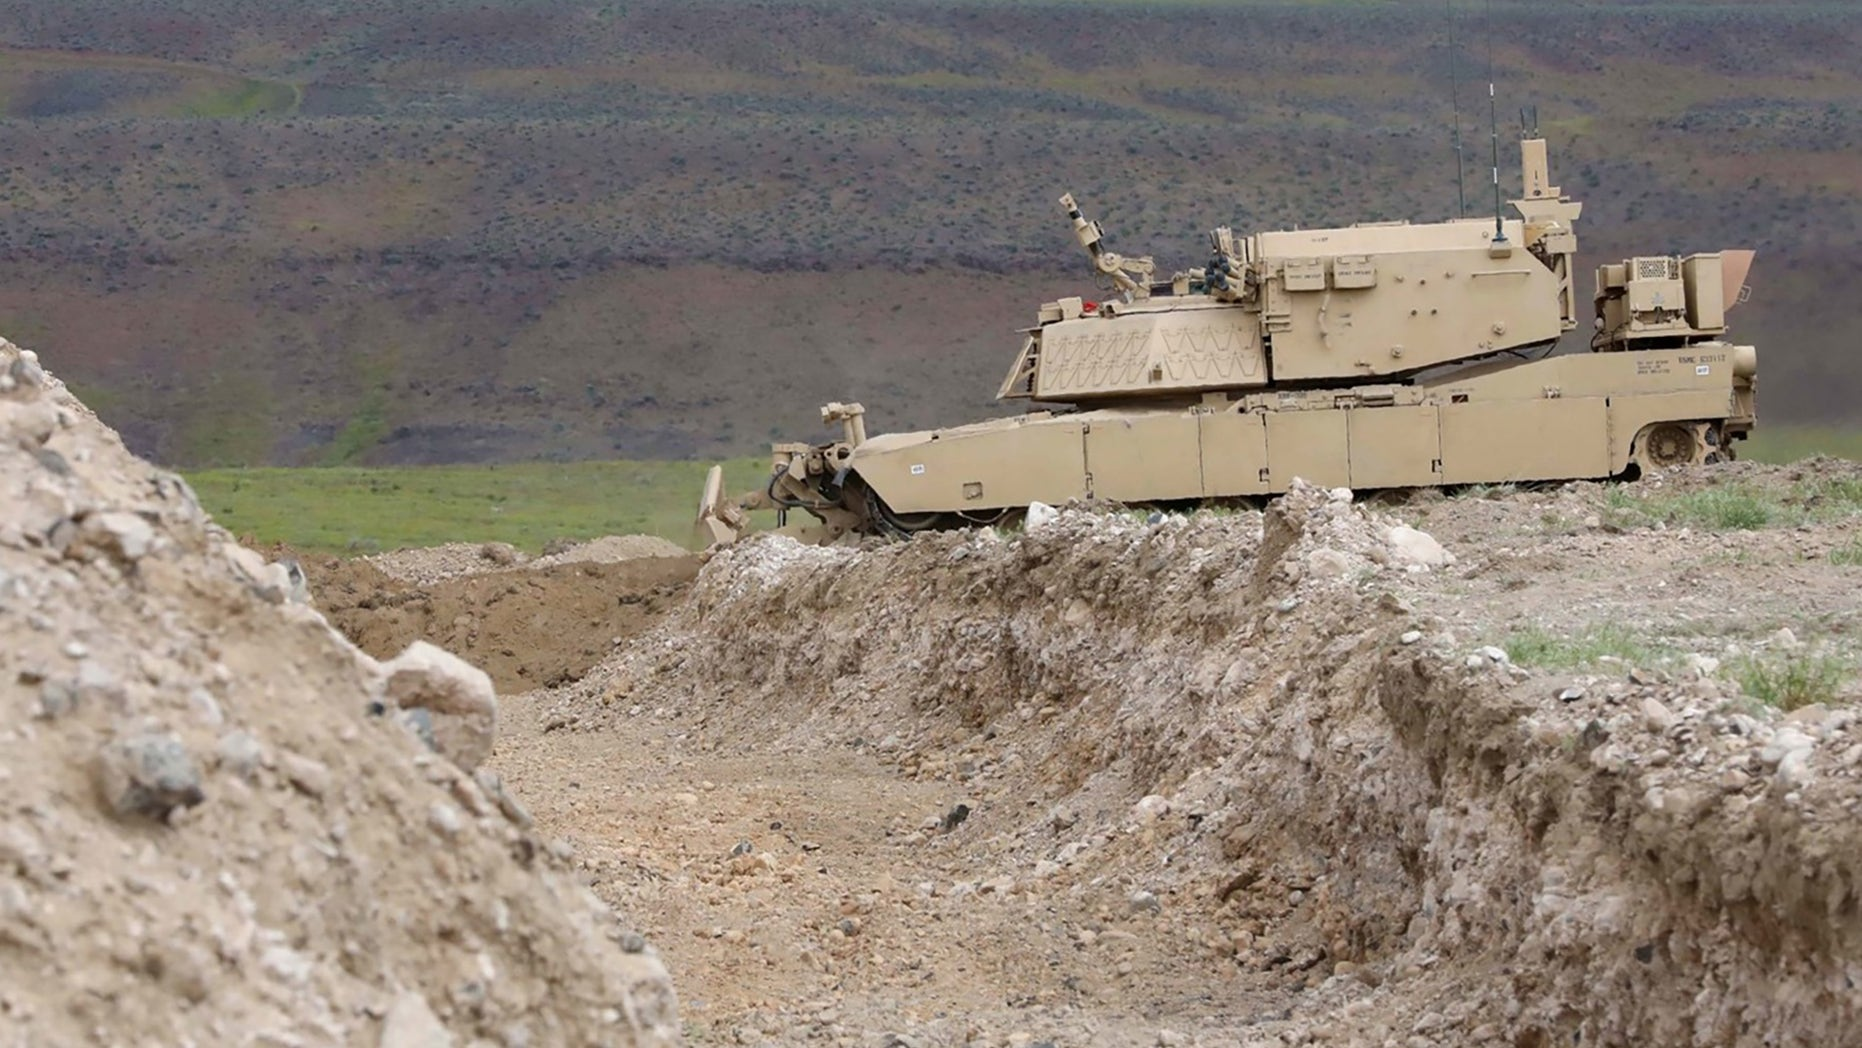 A remote-controlled concept assault breacher vehicle prepares to breach an obstacle during field testing at the Joint Warfighting Assessment 19, April 28, 2019.